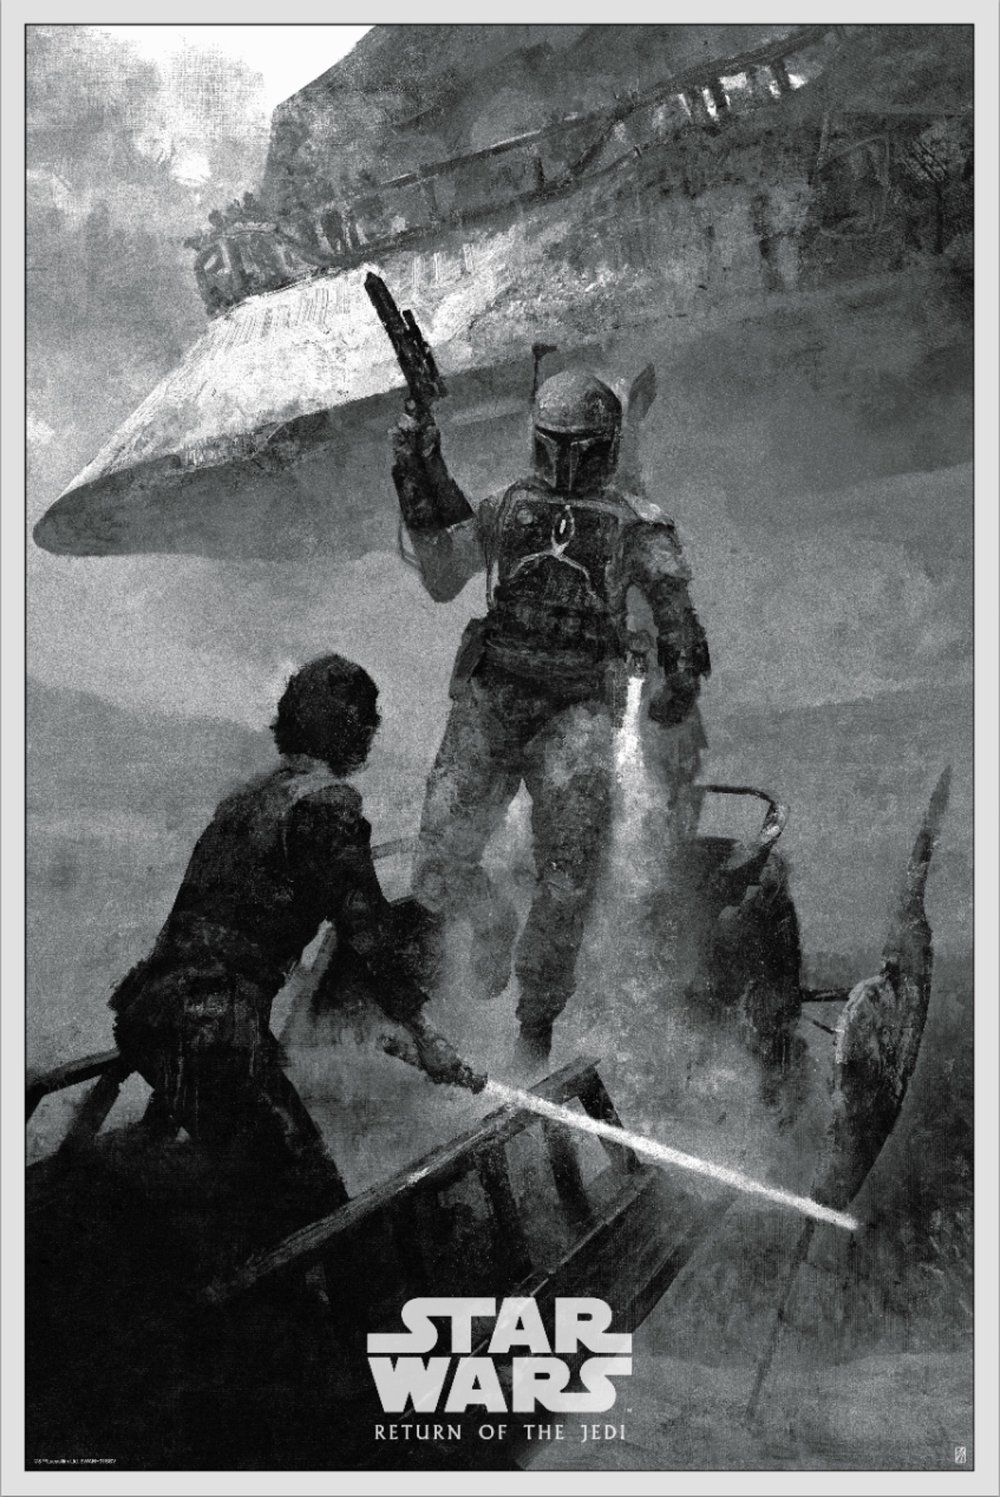 Karl-Fitzgerald-22Skywalker-Returns-Return-of-the-Jedi-Variant22-Screen-print.jpg